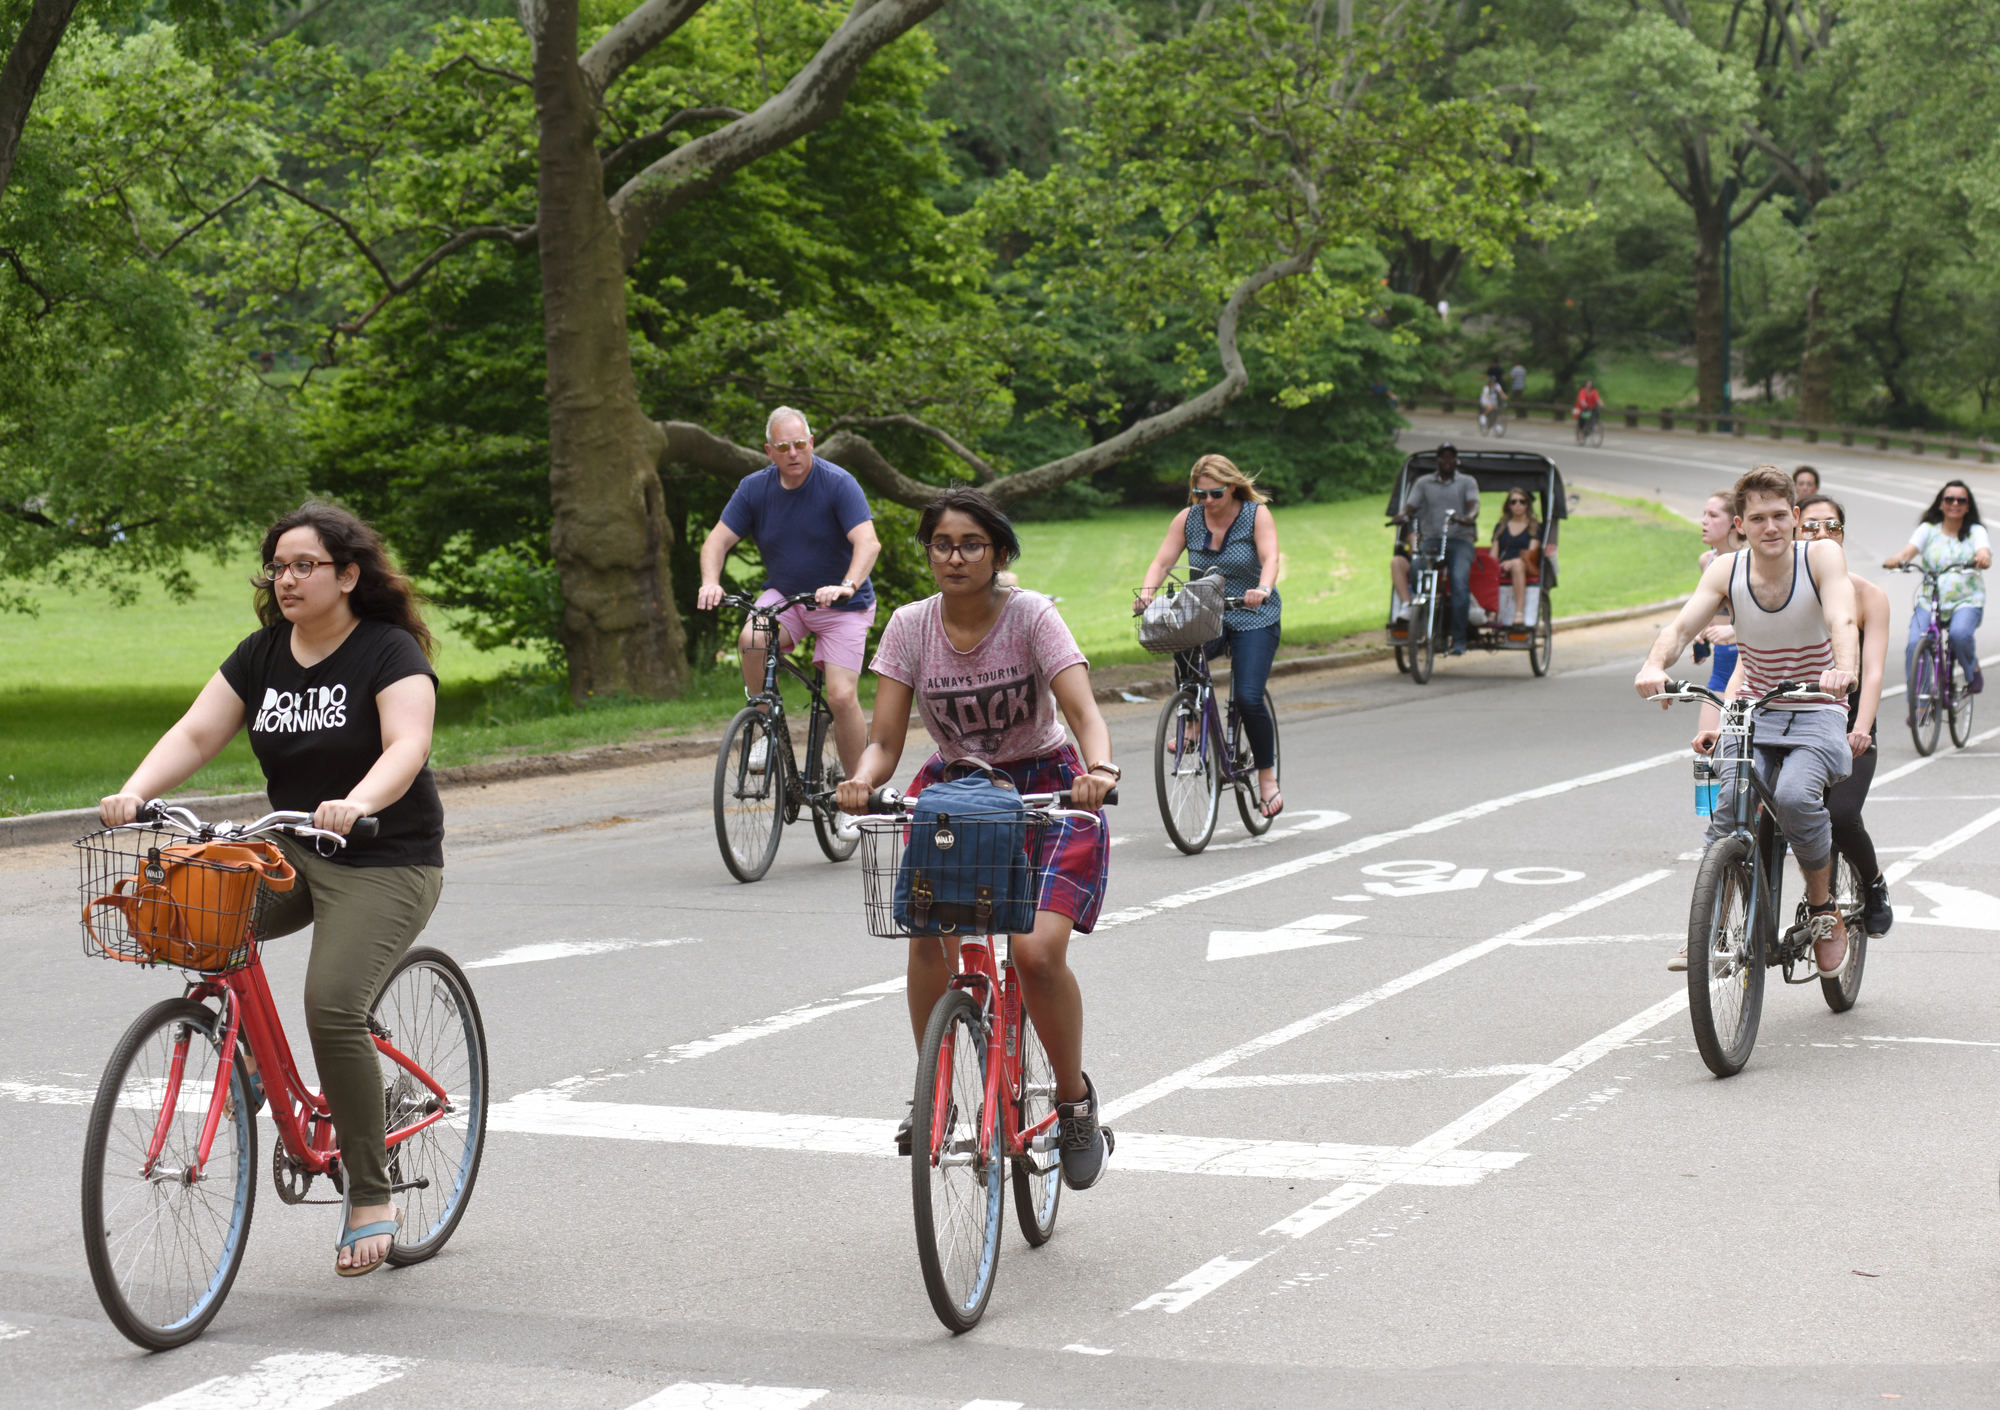 an image of people riding bicycles on one of the new york sightseeing tours